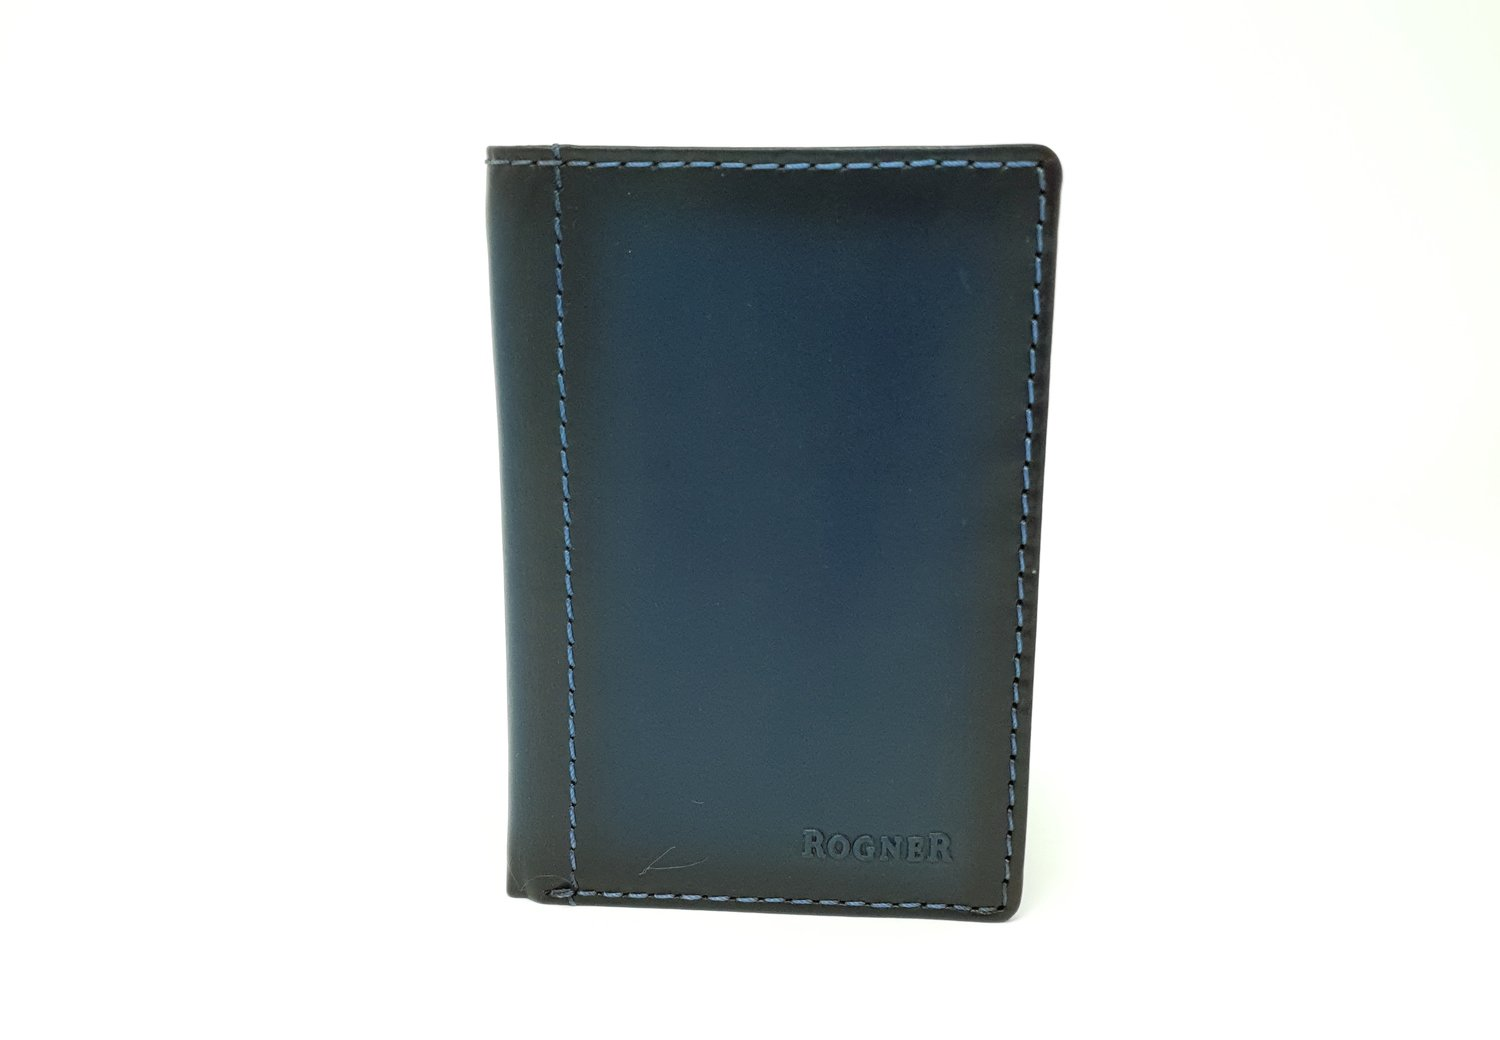 Case for car documents jeans look